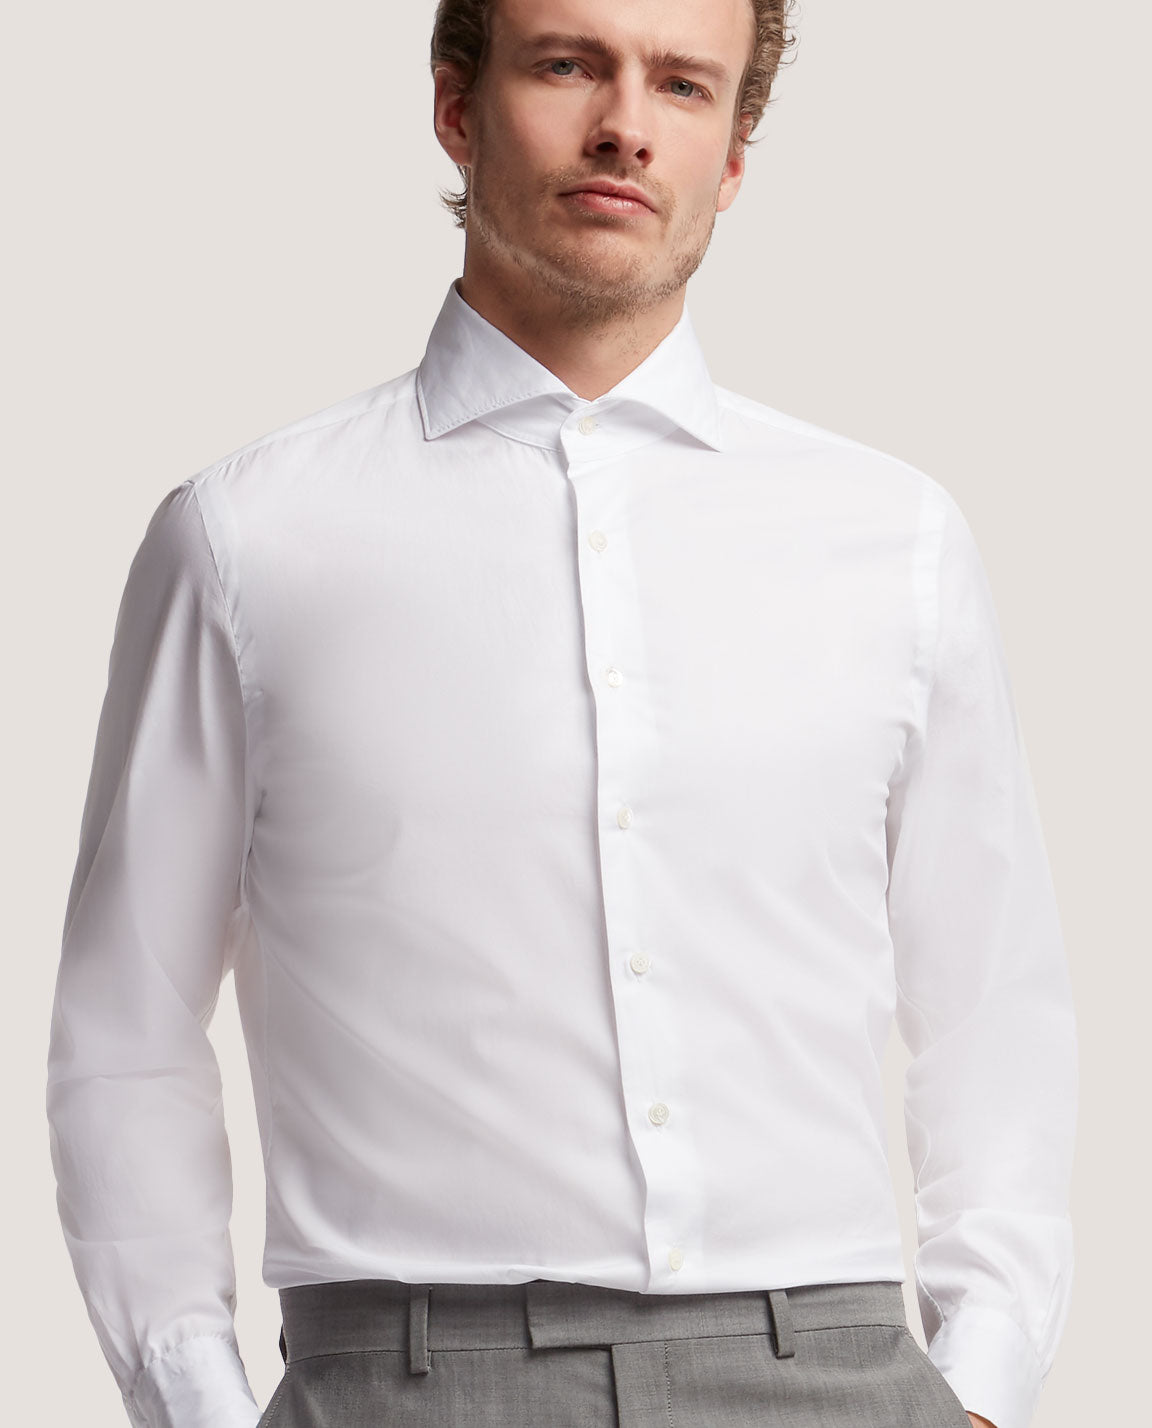 EVRON Slim fit shirt | Cotton twill